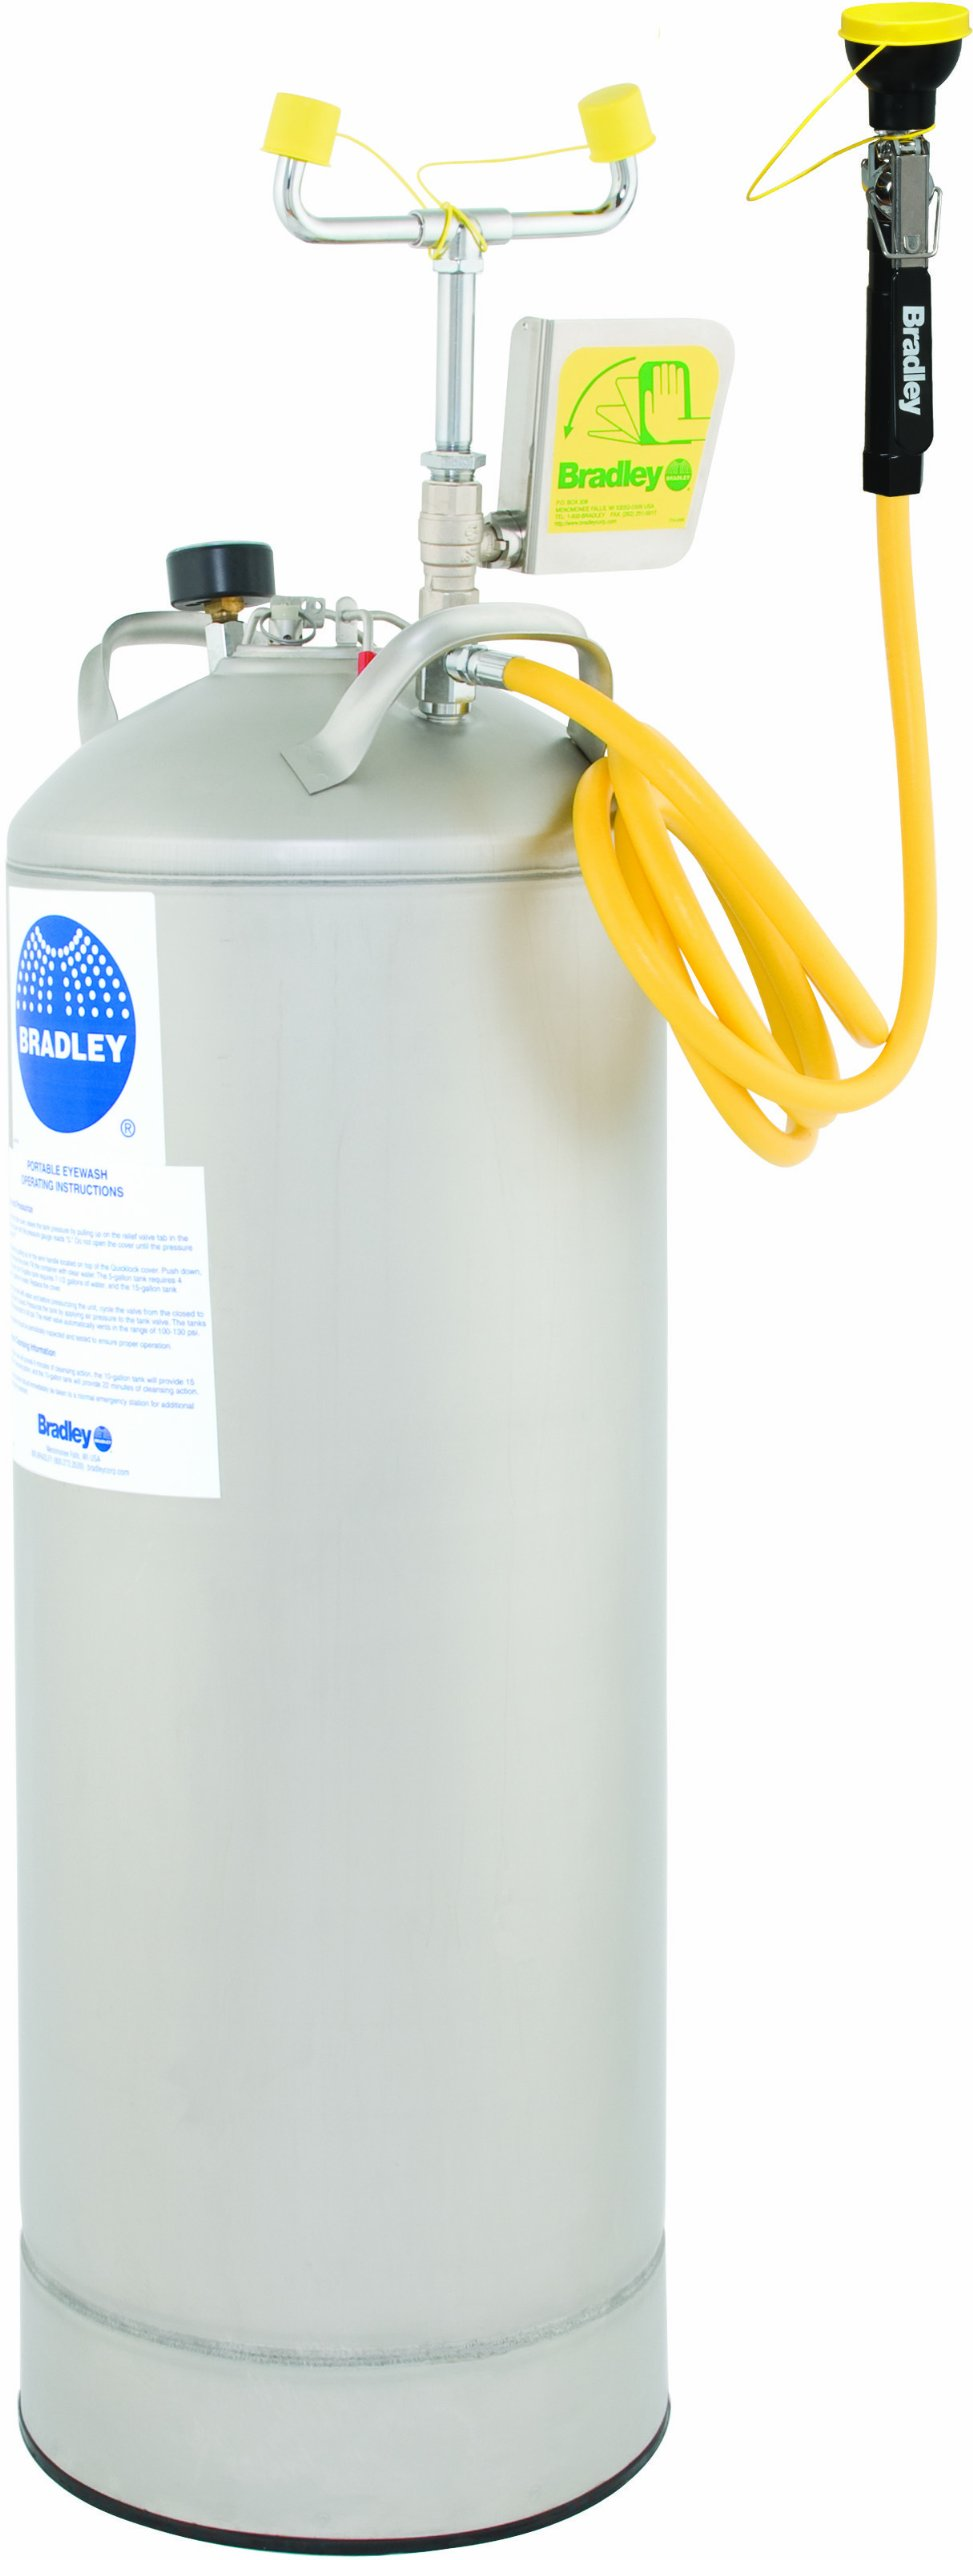 Bradley S19-788 15 Gallon Safety Portable Pressurized Eye/Face Wash Unit with Drench Hose, 0.4 GPM Water Flow, 12-1/4'' Width x 34'' Height